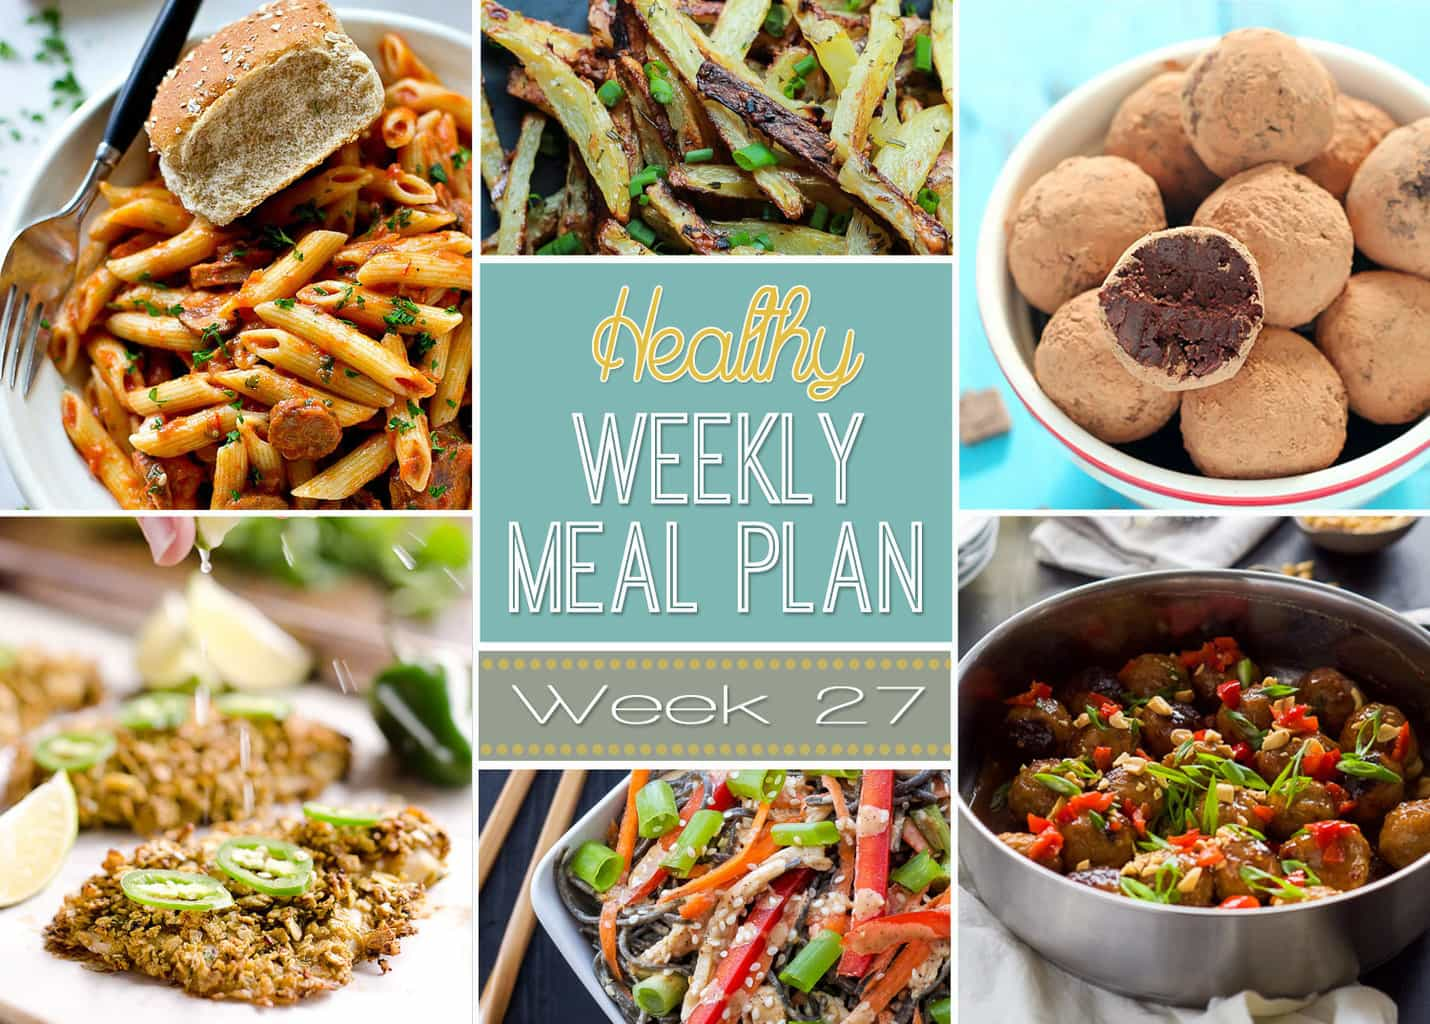 healthy weekly meal plan 27 is ready to go with healthy meals ranging